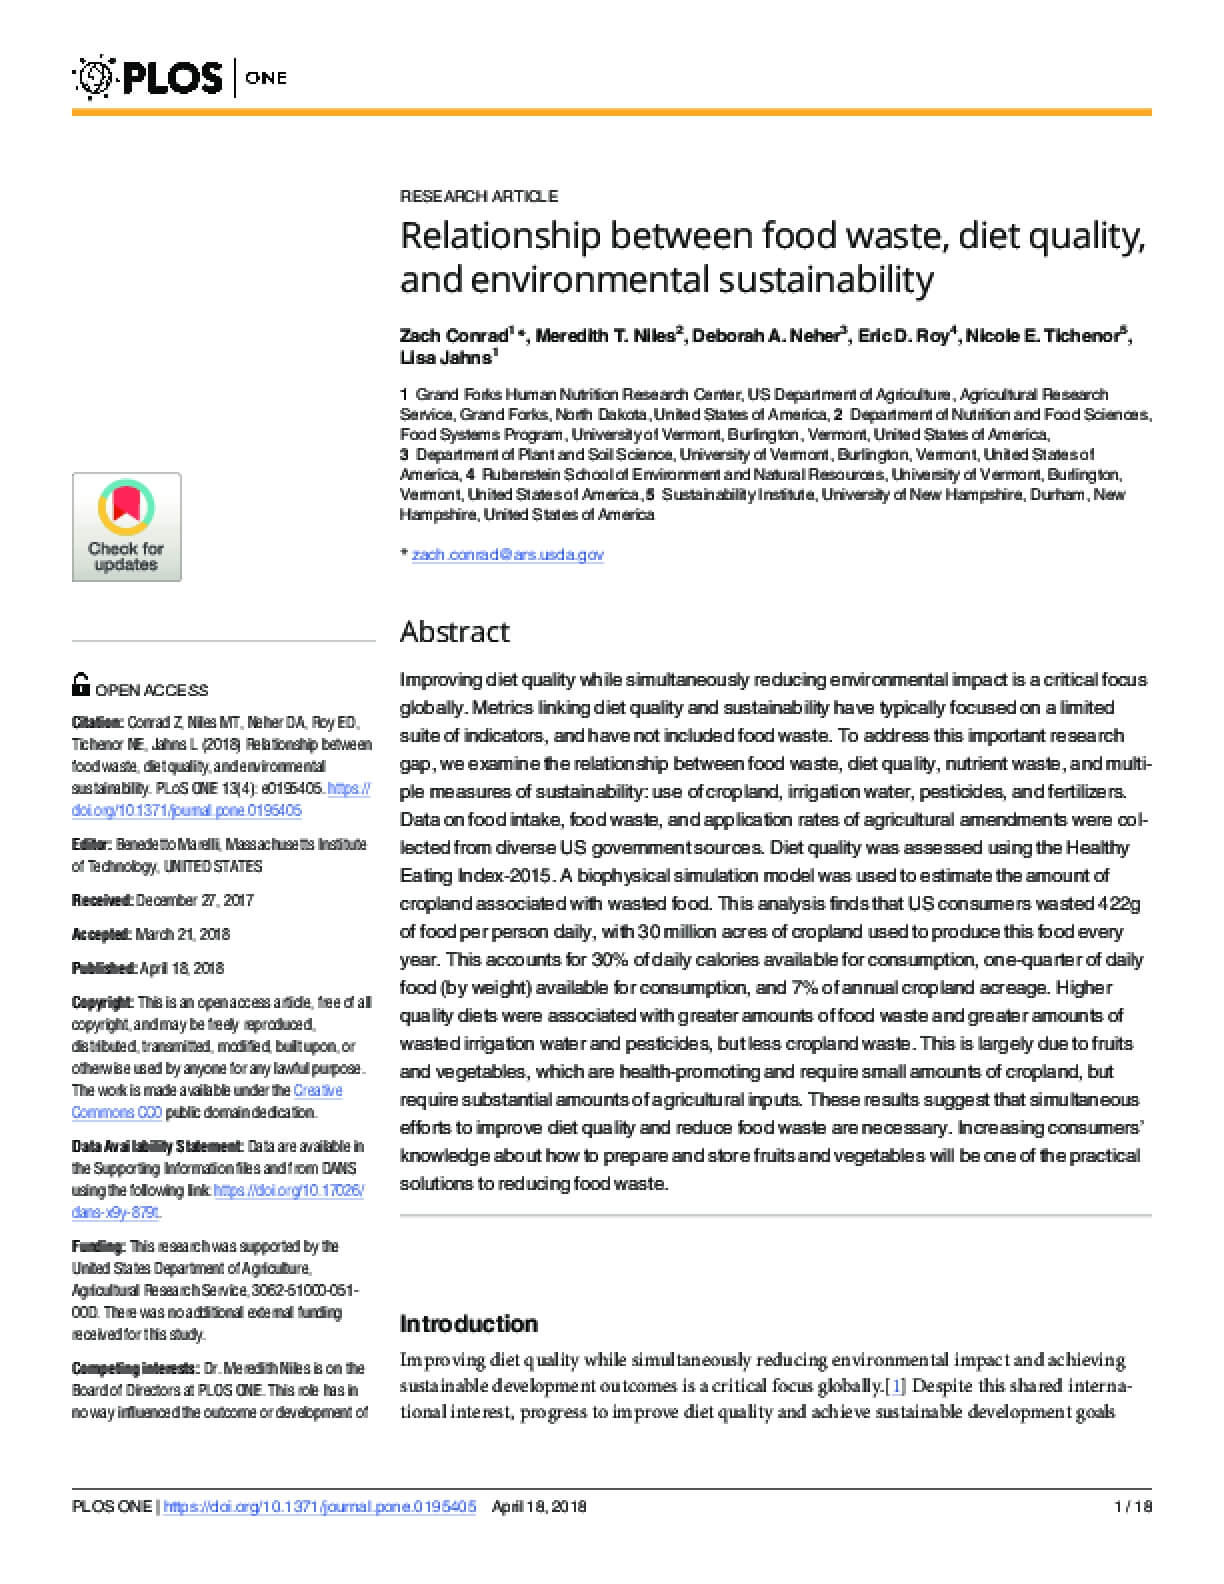 Relationship Between Food Waste, Diet Quality, and Environmental Sustainability